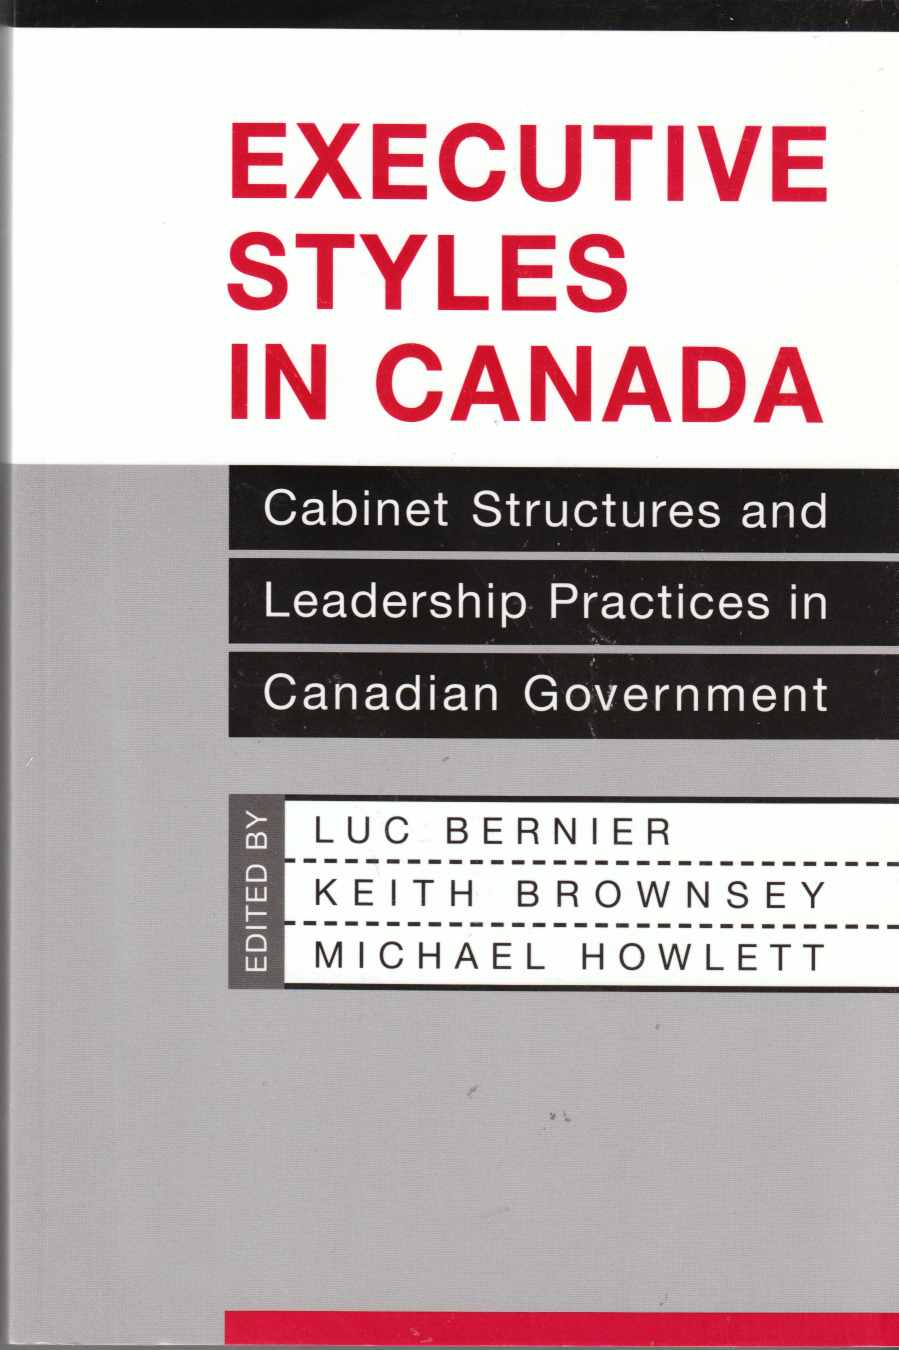 Image for Executive Styles in Canada Cabinet Structures and Leadership Practices in Canadian Government